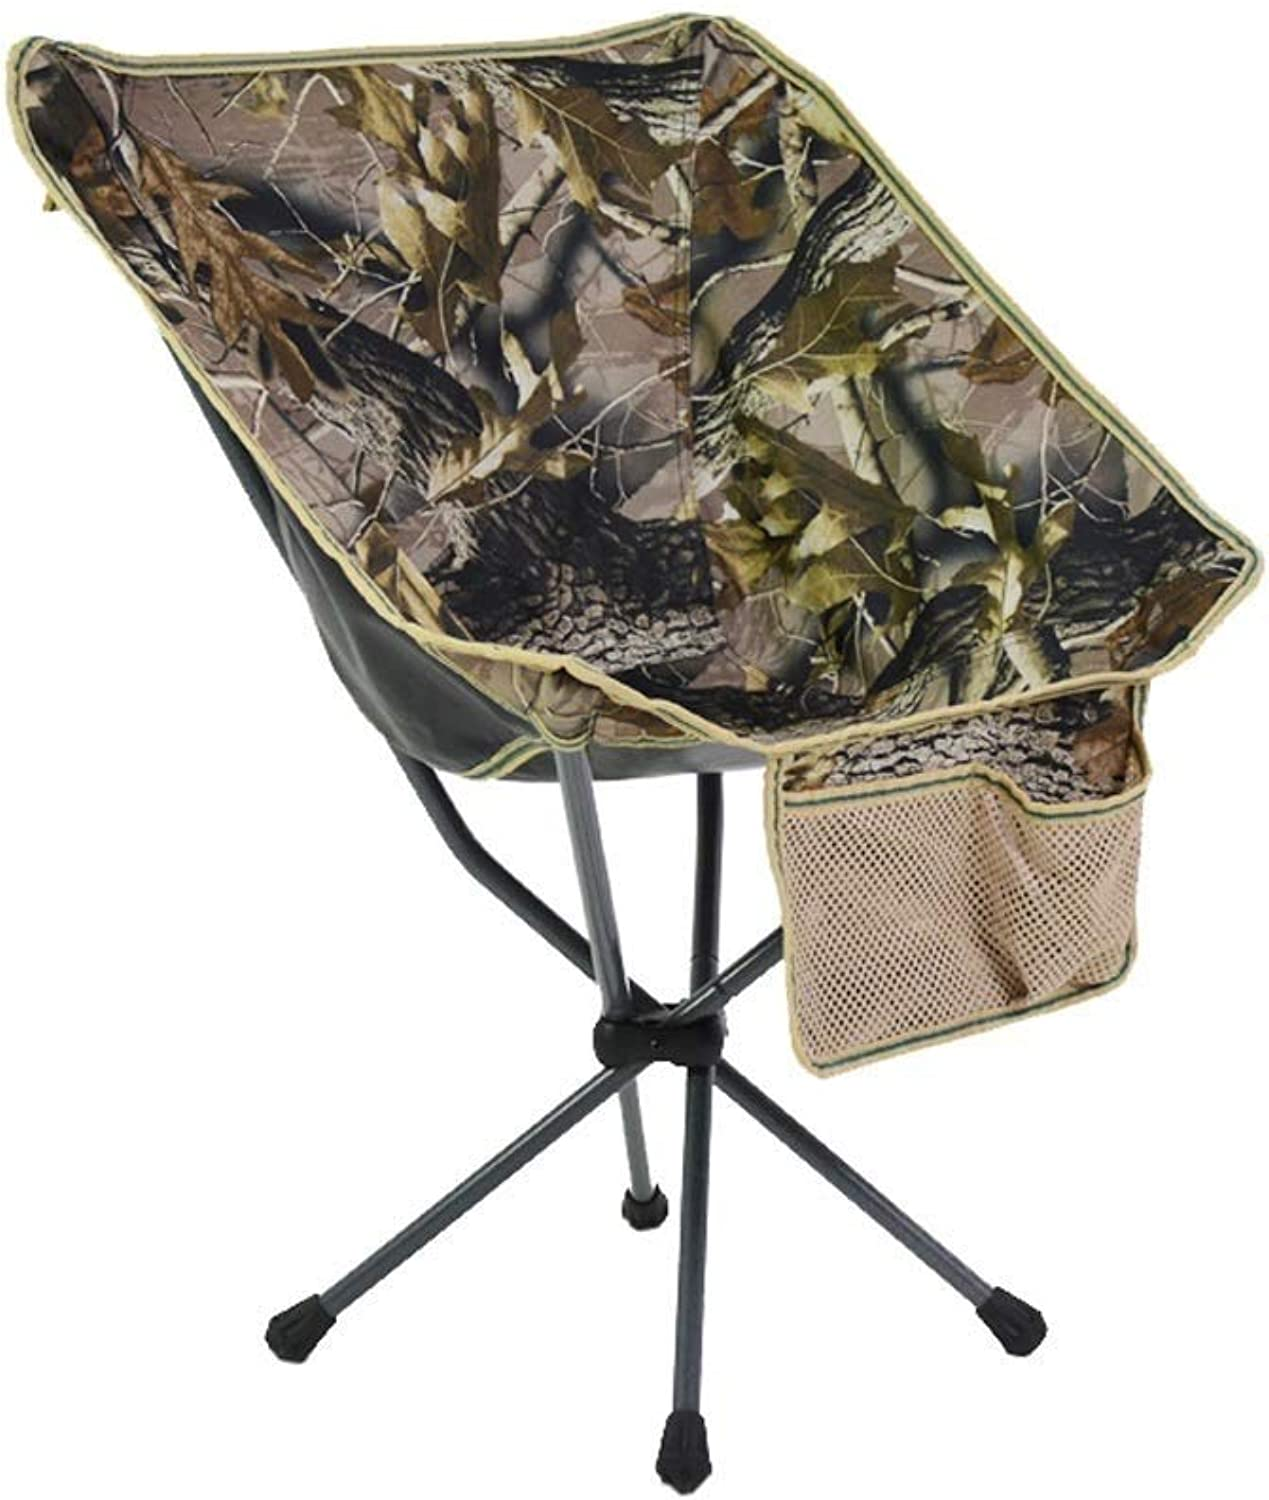 Anas Camping Chair, Oversized Heavy Duty Folding Chair, Padded Deluxe Chair with Cup Holder, and Durable